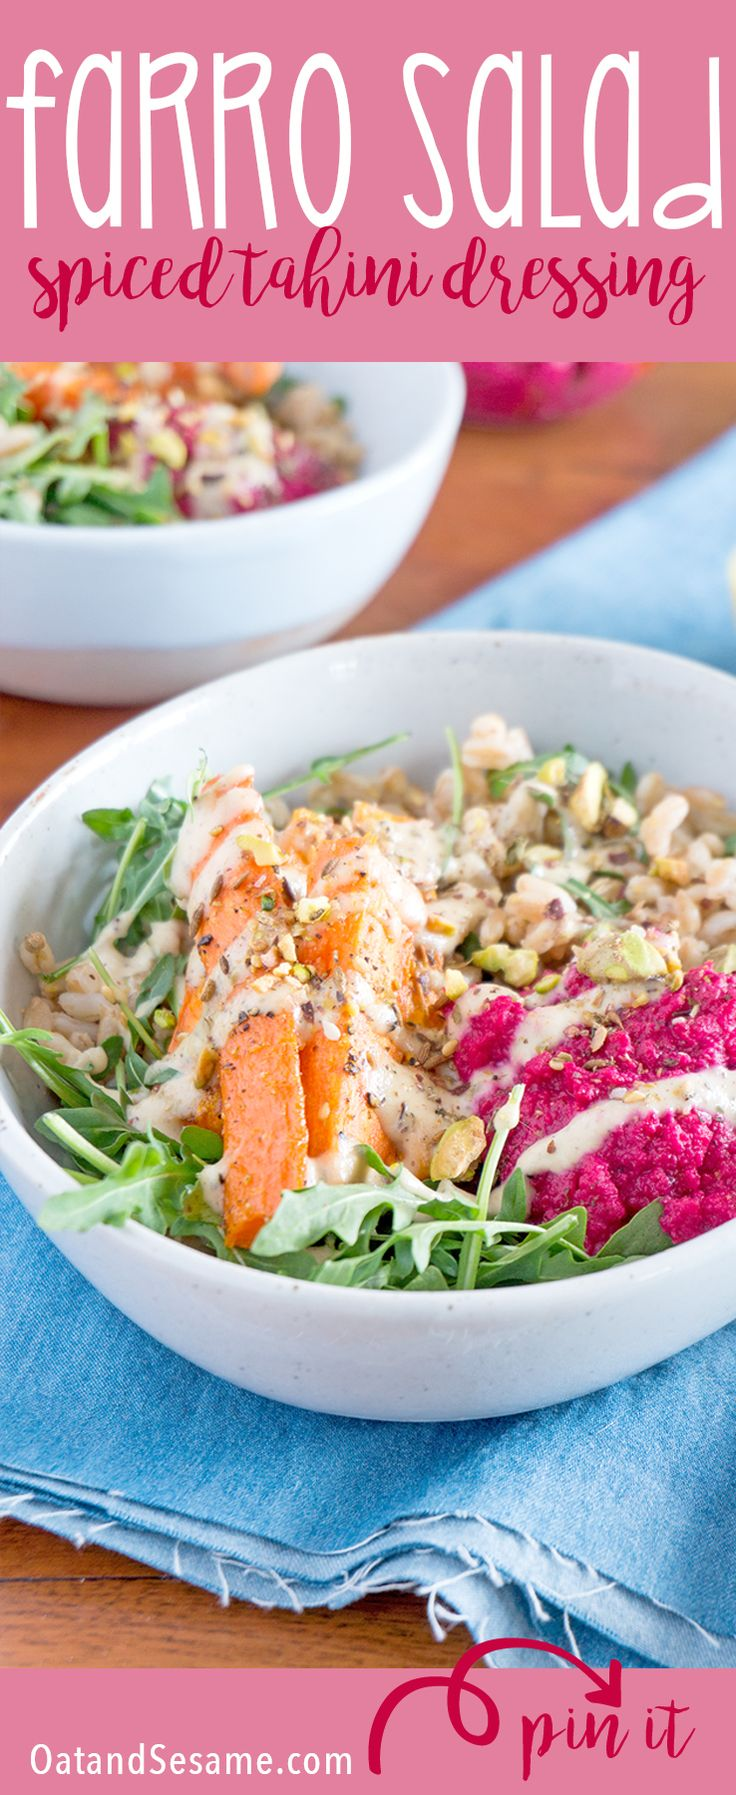 I created this farro salad with roasted carrots, baby arugula, beet hummus and dukkah for meal prep this week. It sounds like a lot of parts, but you can easily make everything in 45 min. I give you several ways to cut down the time in the post. It's packed with flavor and more importantly it's packed with nutrition. | MEAL PREP | PLANT BASED | VEGETARIAN | VEGAN | FOOD IN BOWLS | recipe at OatandSesame.com